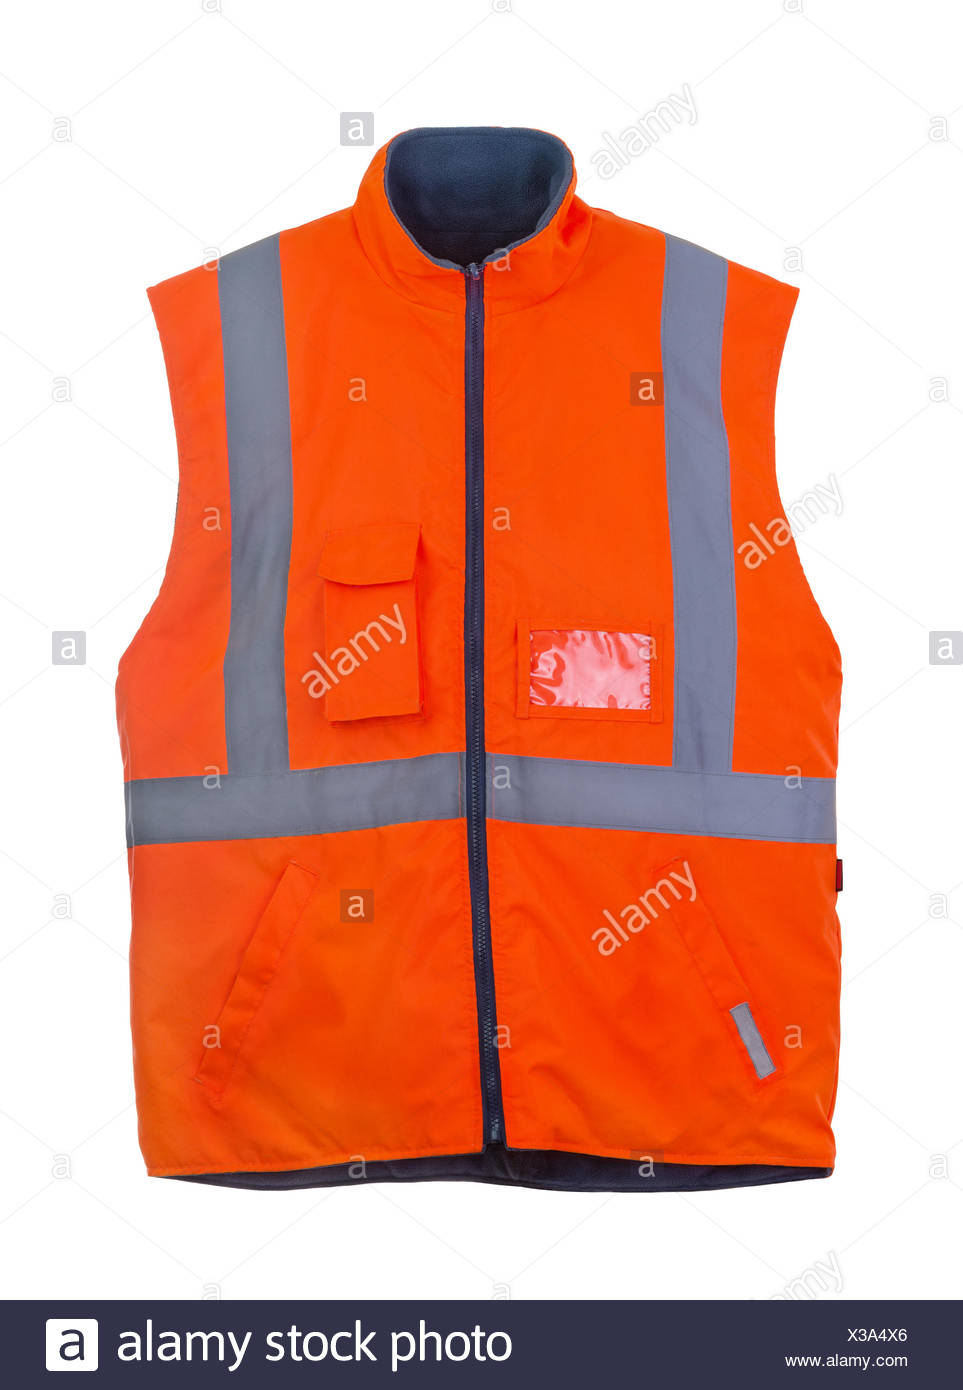 Safety orange vest - Stock Image